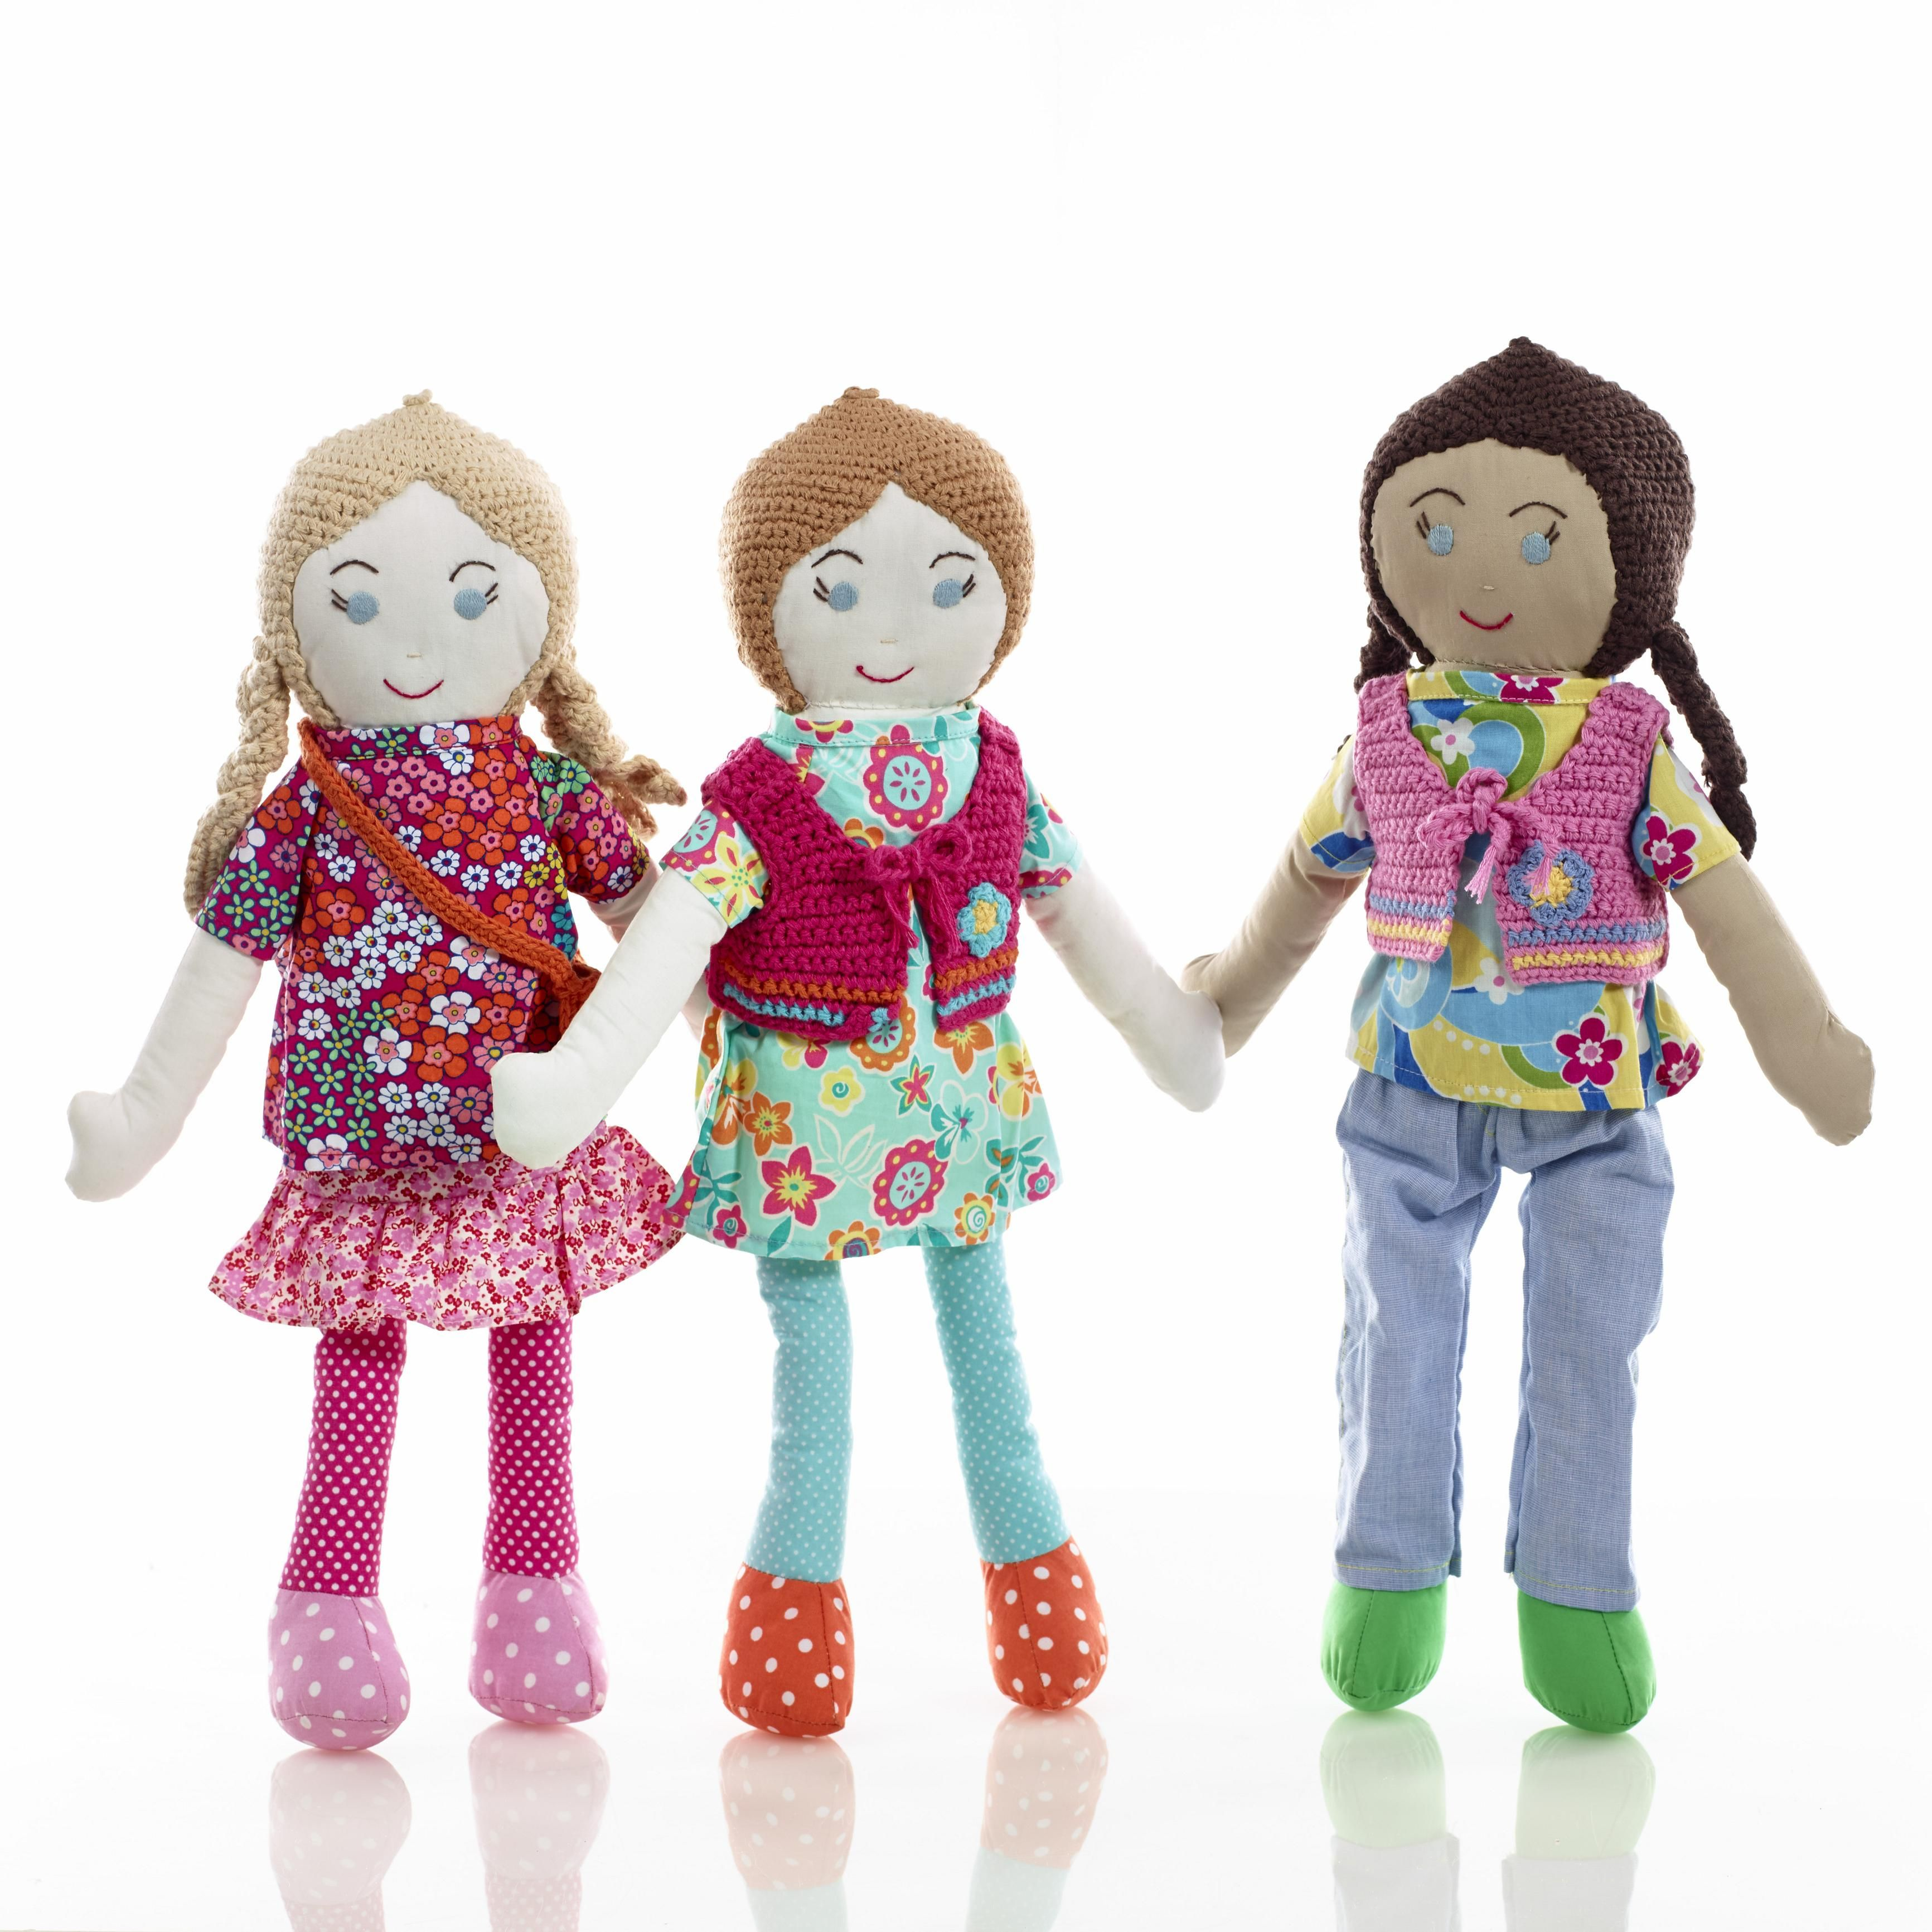 And dolls do not have to be pink to be popular